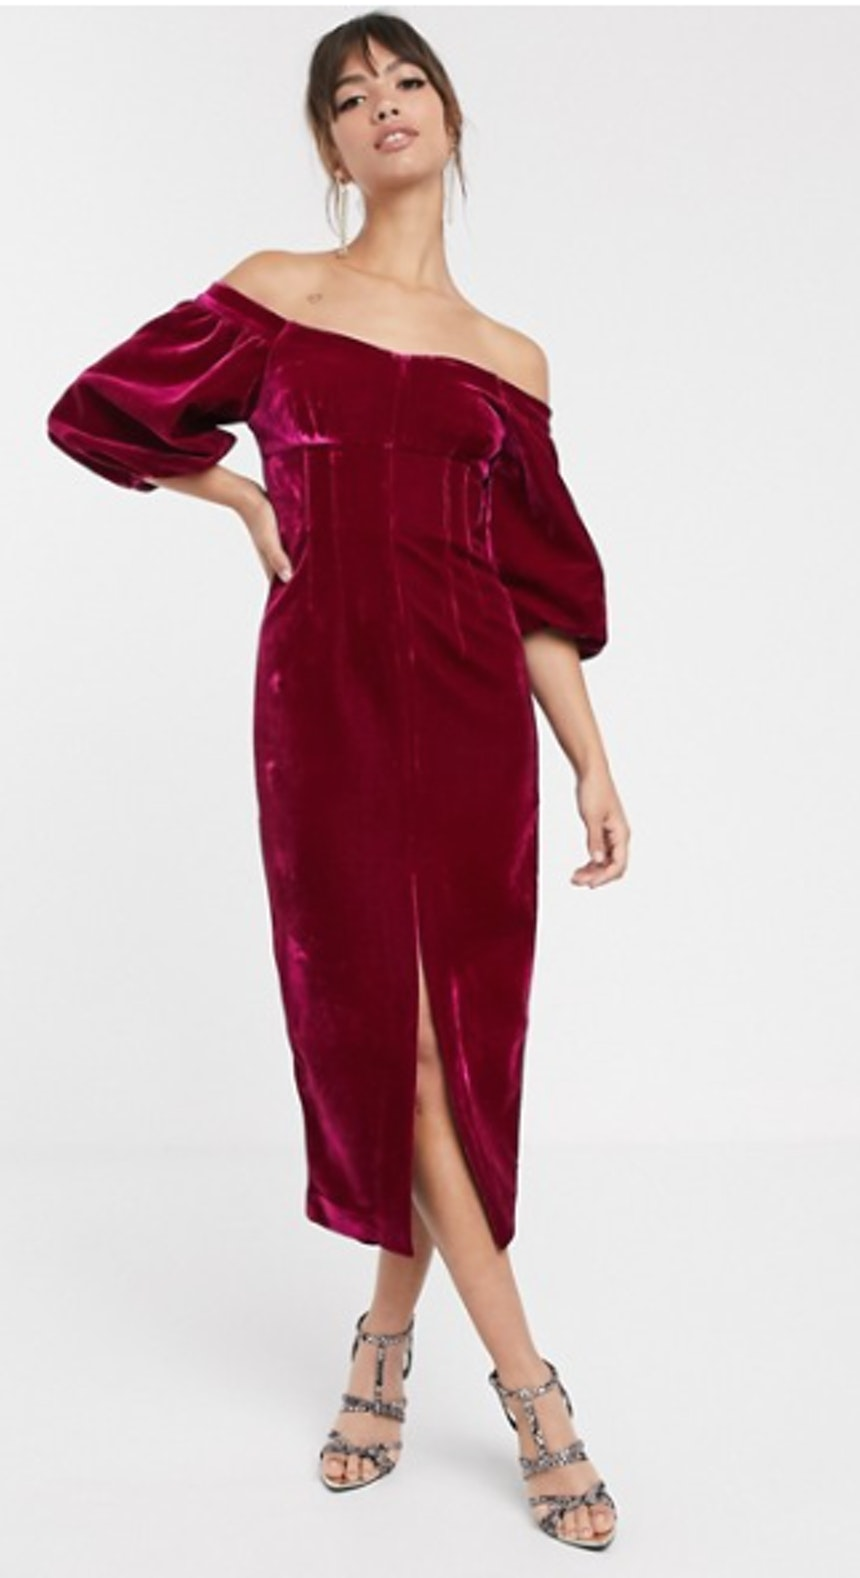 Five Christmas Outfit Ideas For The Party Season